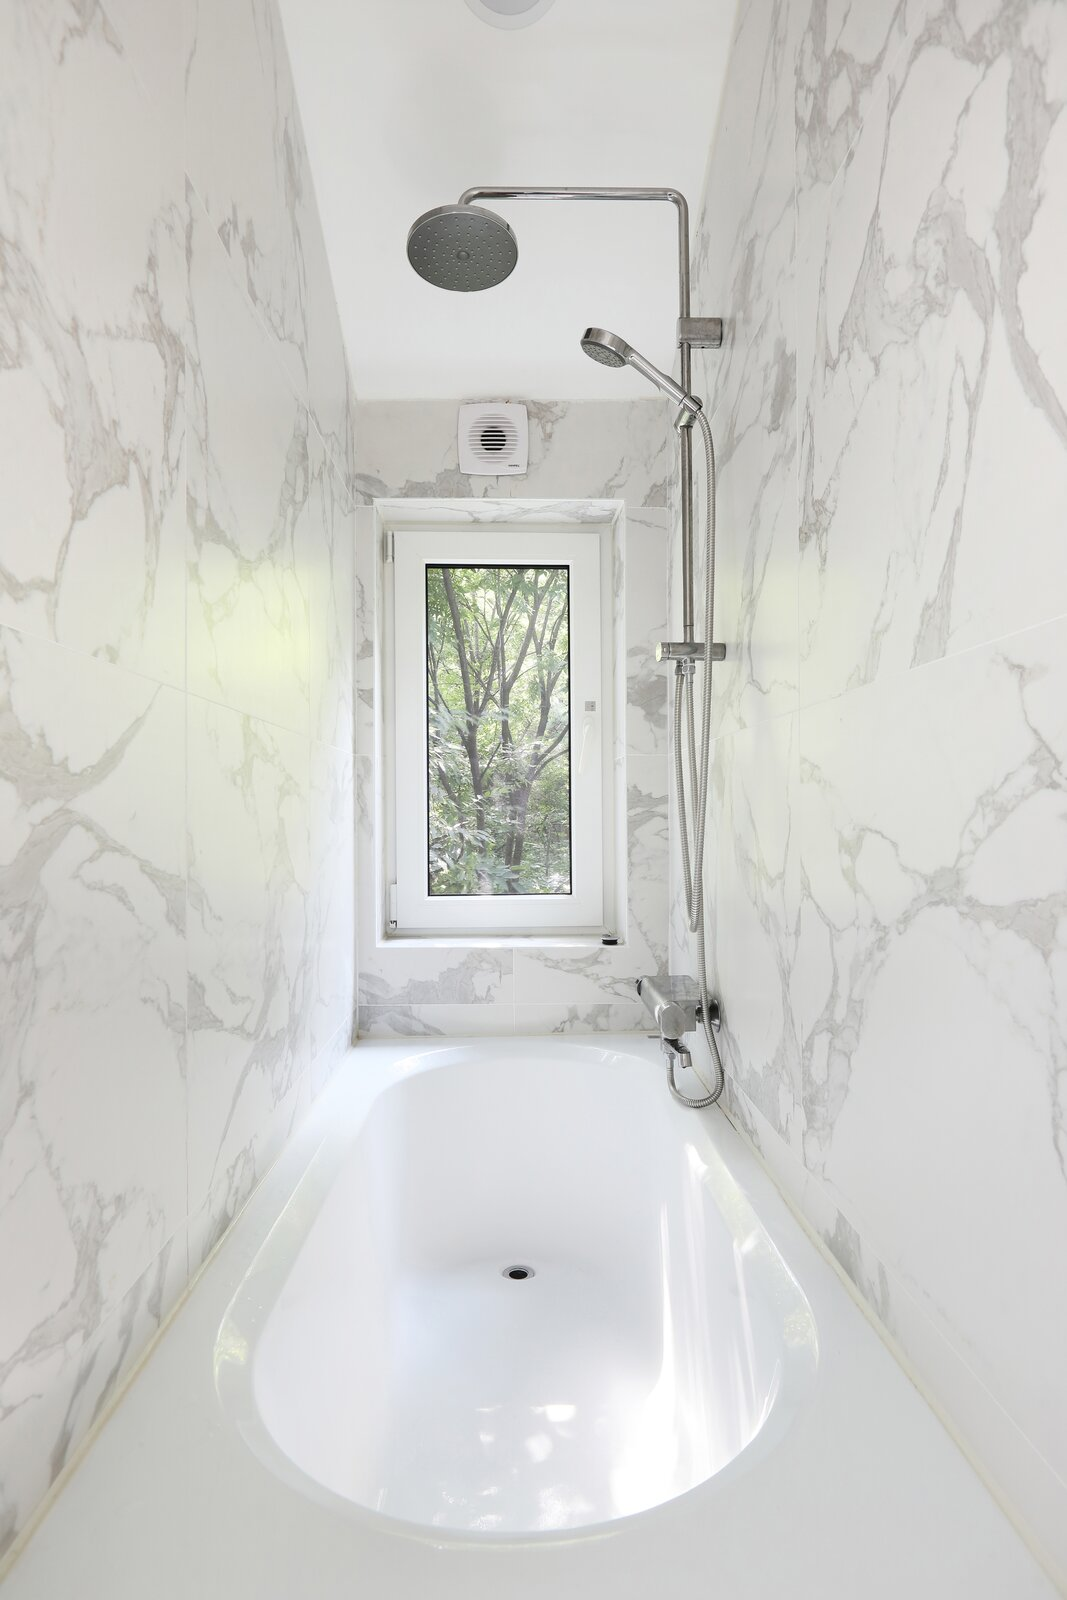 Seroro House by Smaller Architects marble bathroom